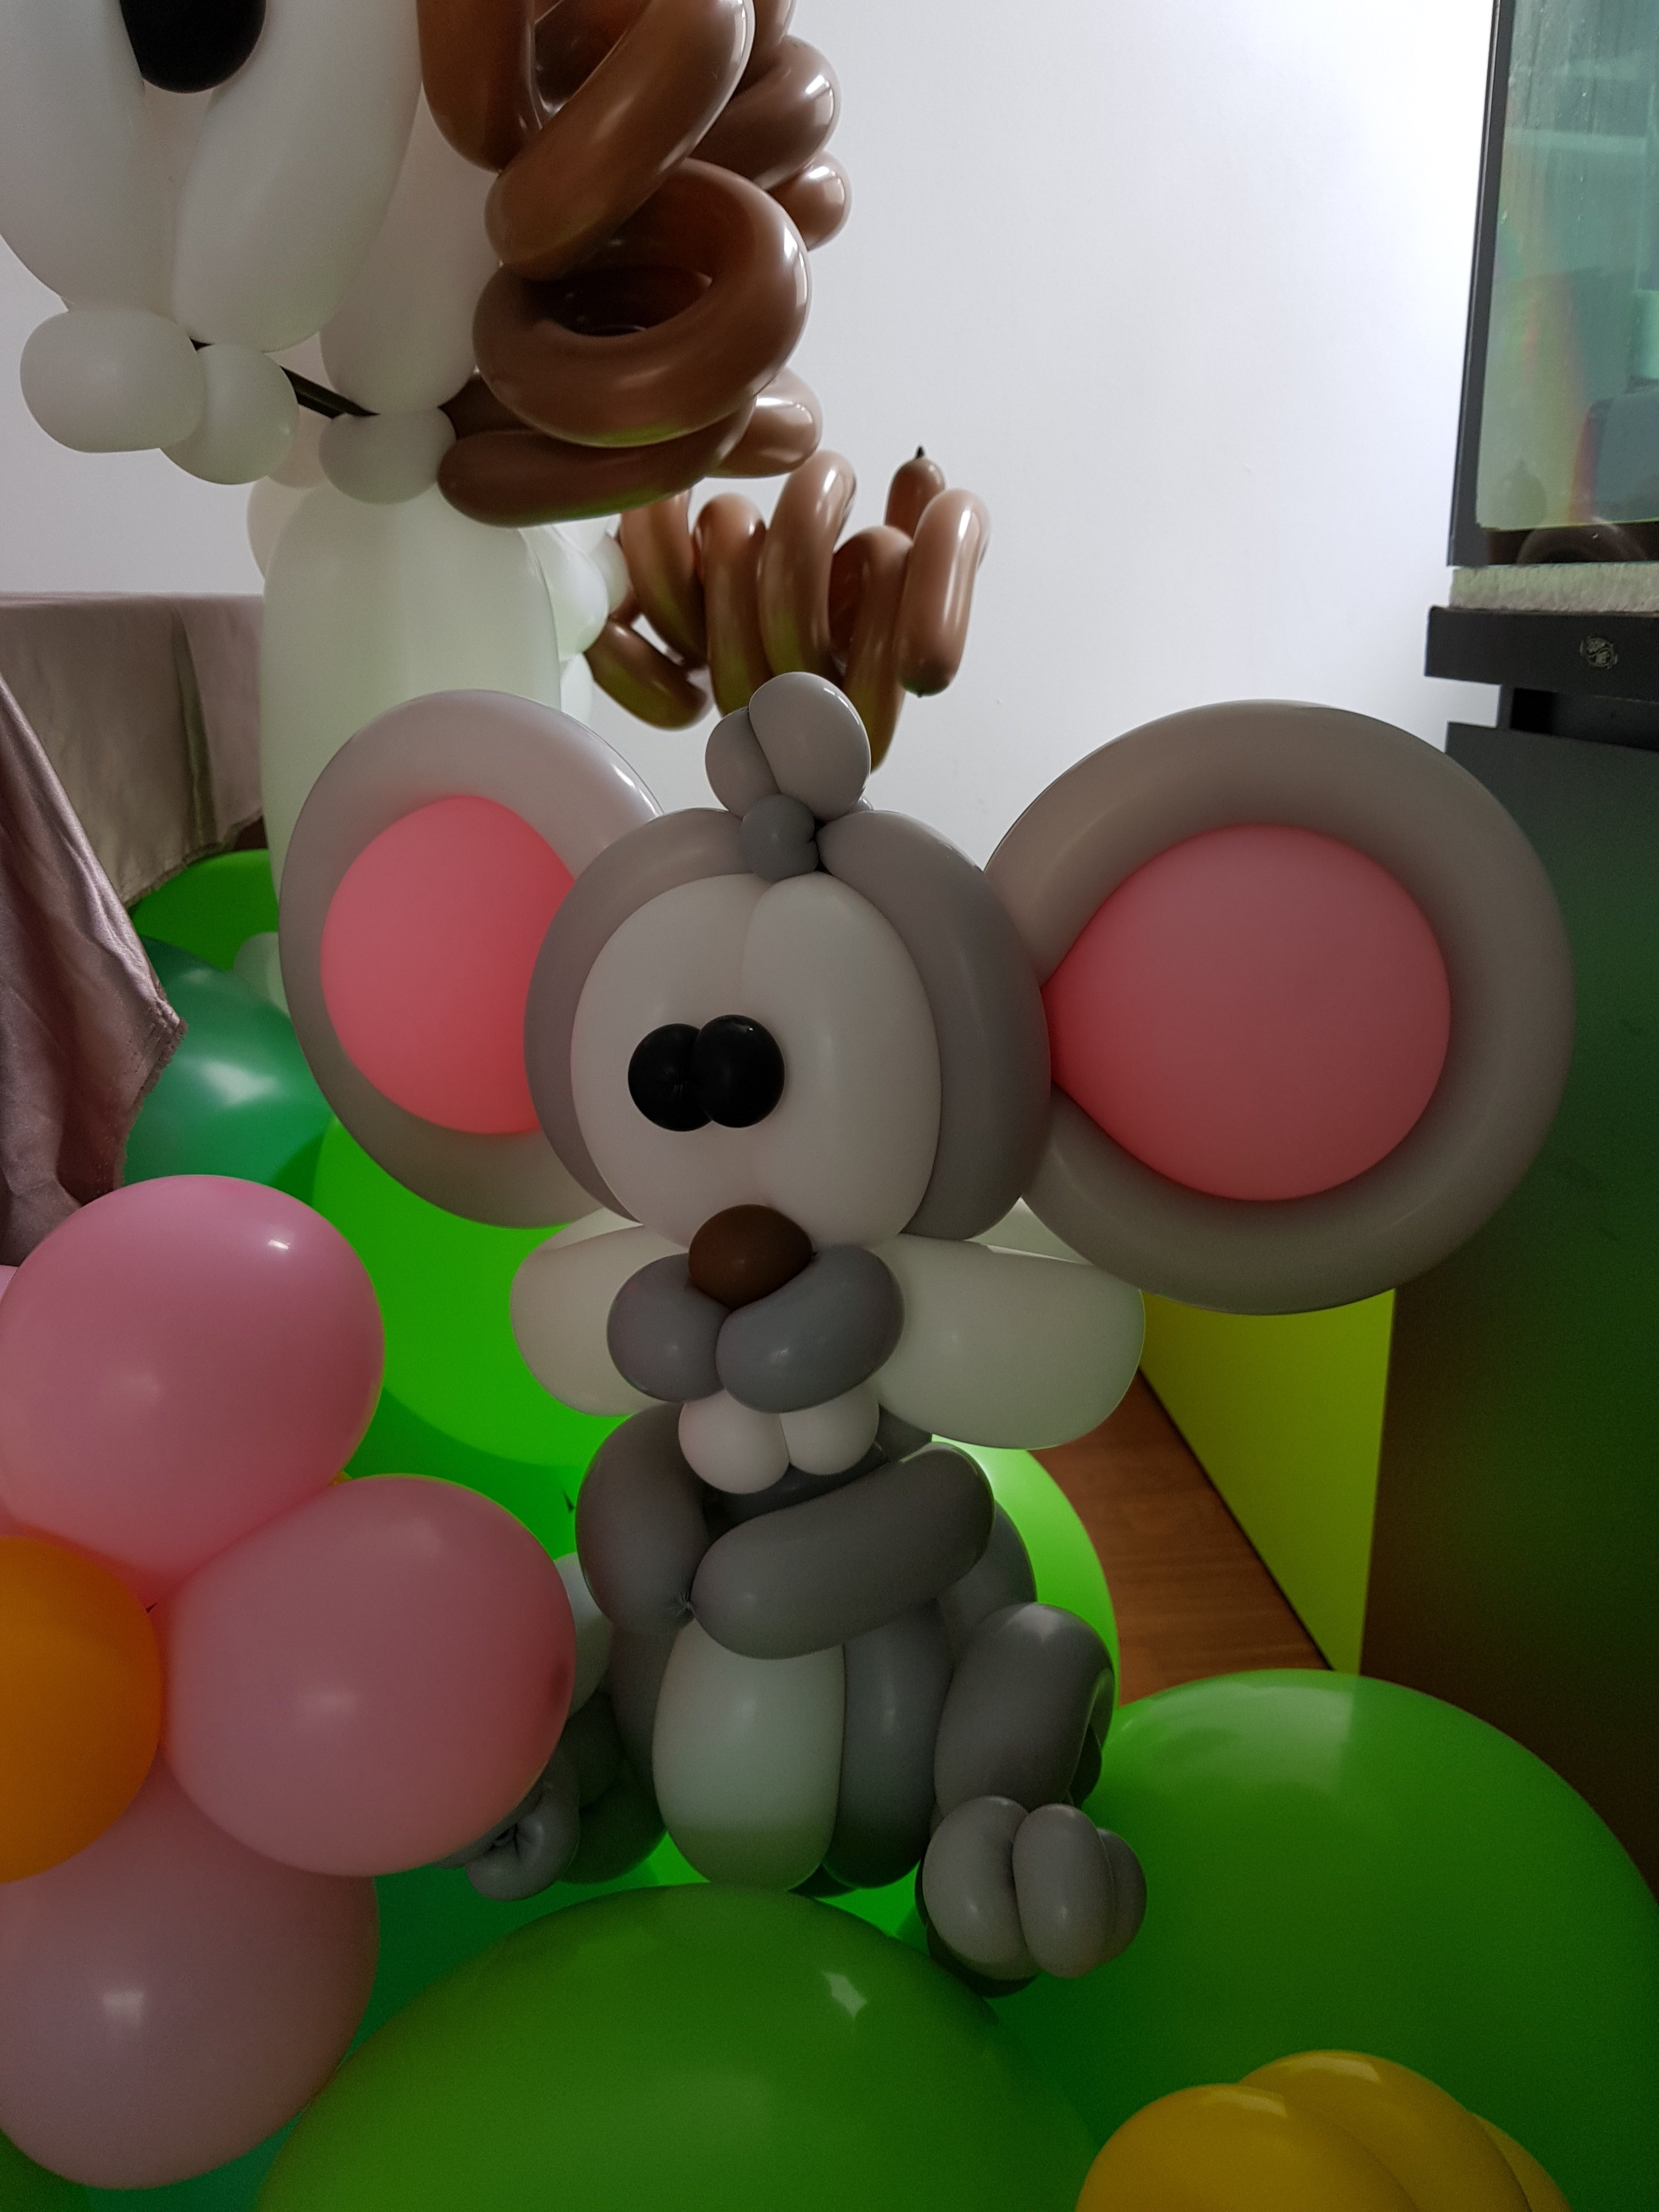 , Balloon decorations for my long term client, thanks for having me again! And its a animal theme balloon decorations., Singapore Balloon Decoration Services - Balloon Workshop and Balloon Sculpting